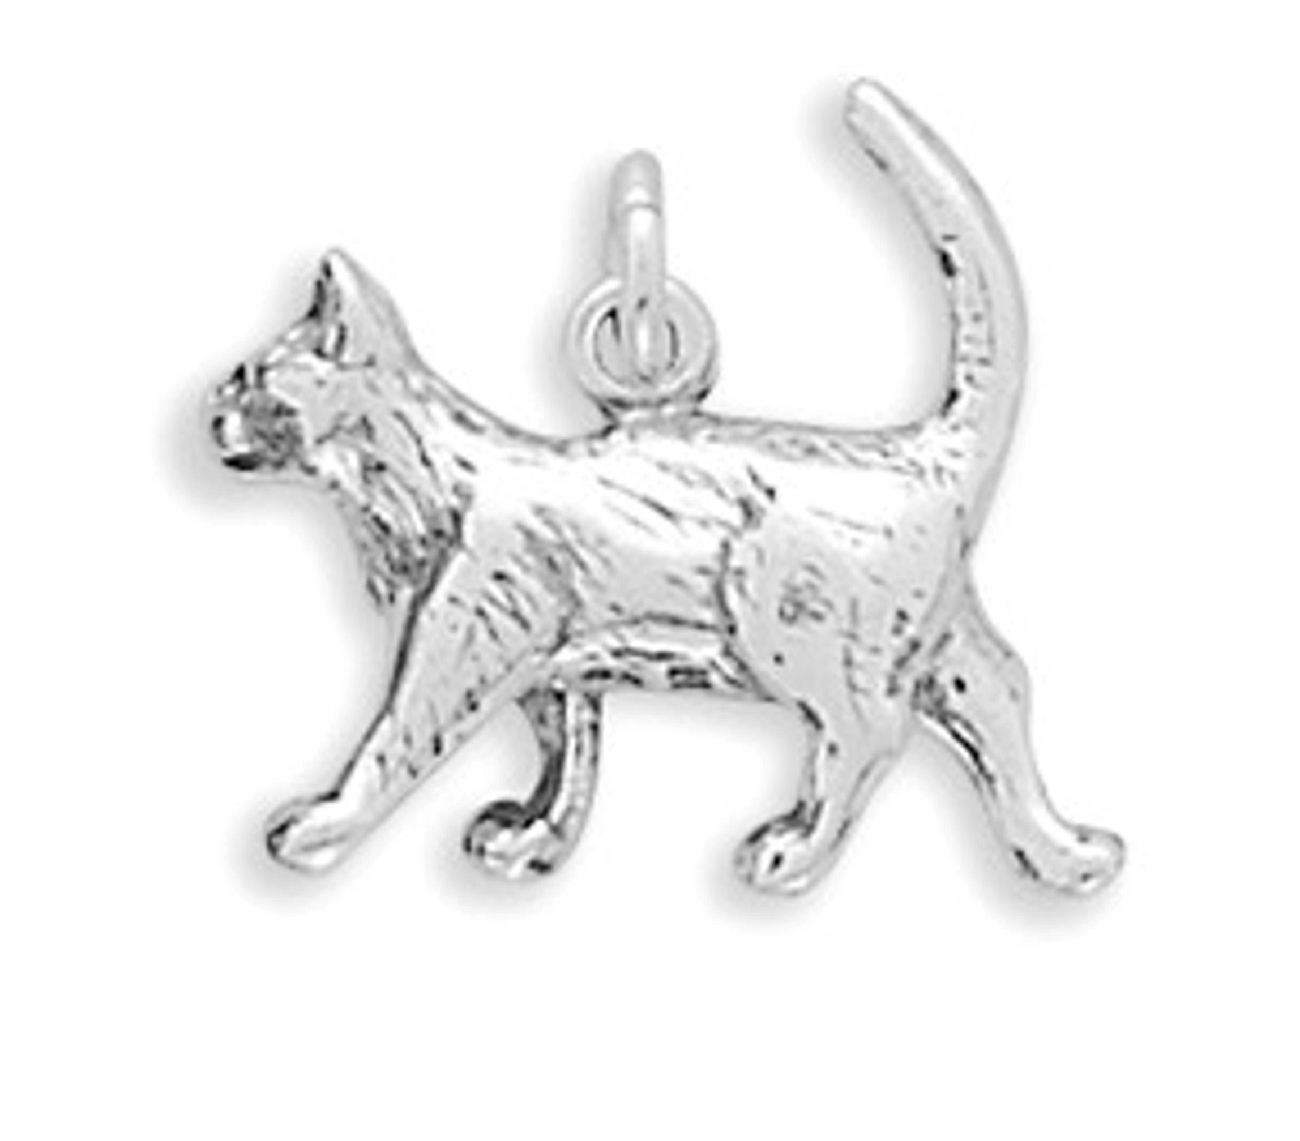 3D Walking Kitty Cat Charm